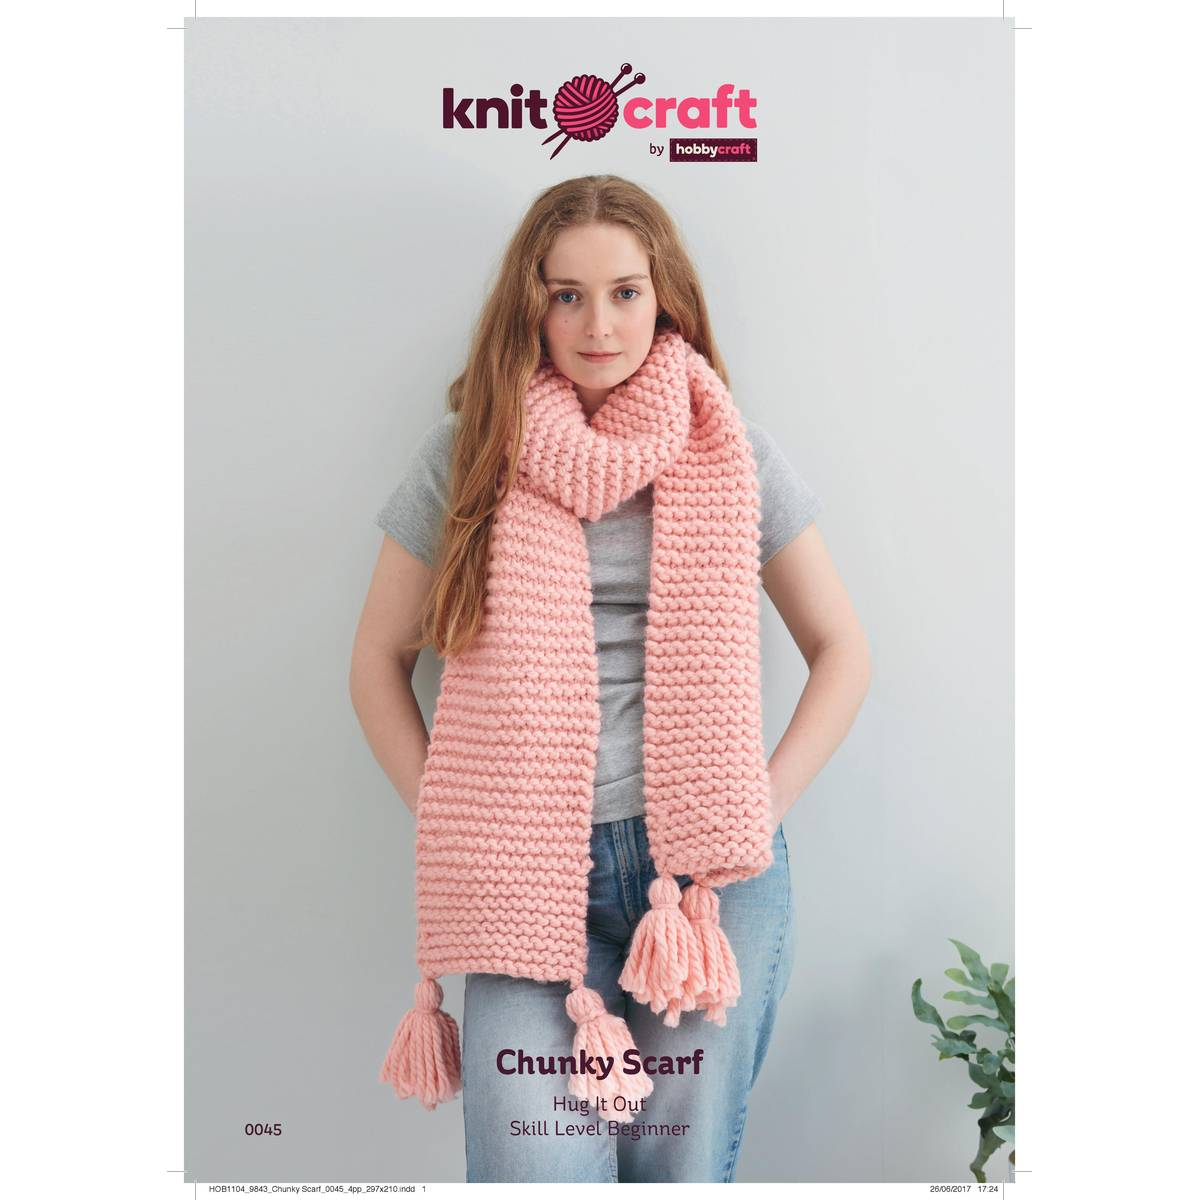 Knitting Scarf Pattern For Beginners Free Free Pattern Knitcraft Hug It Out Chunky Scarf 0045 Hobcraft